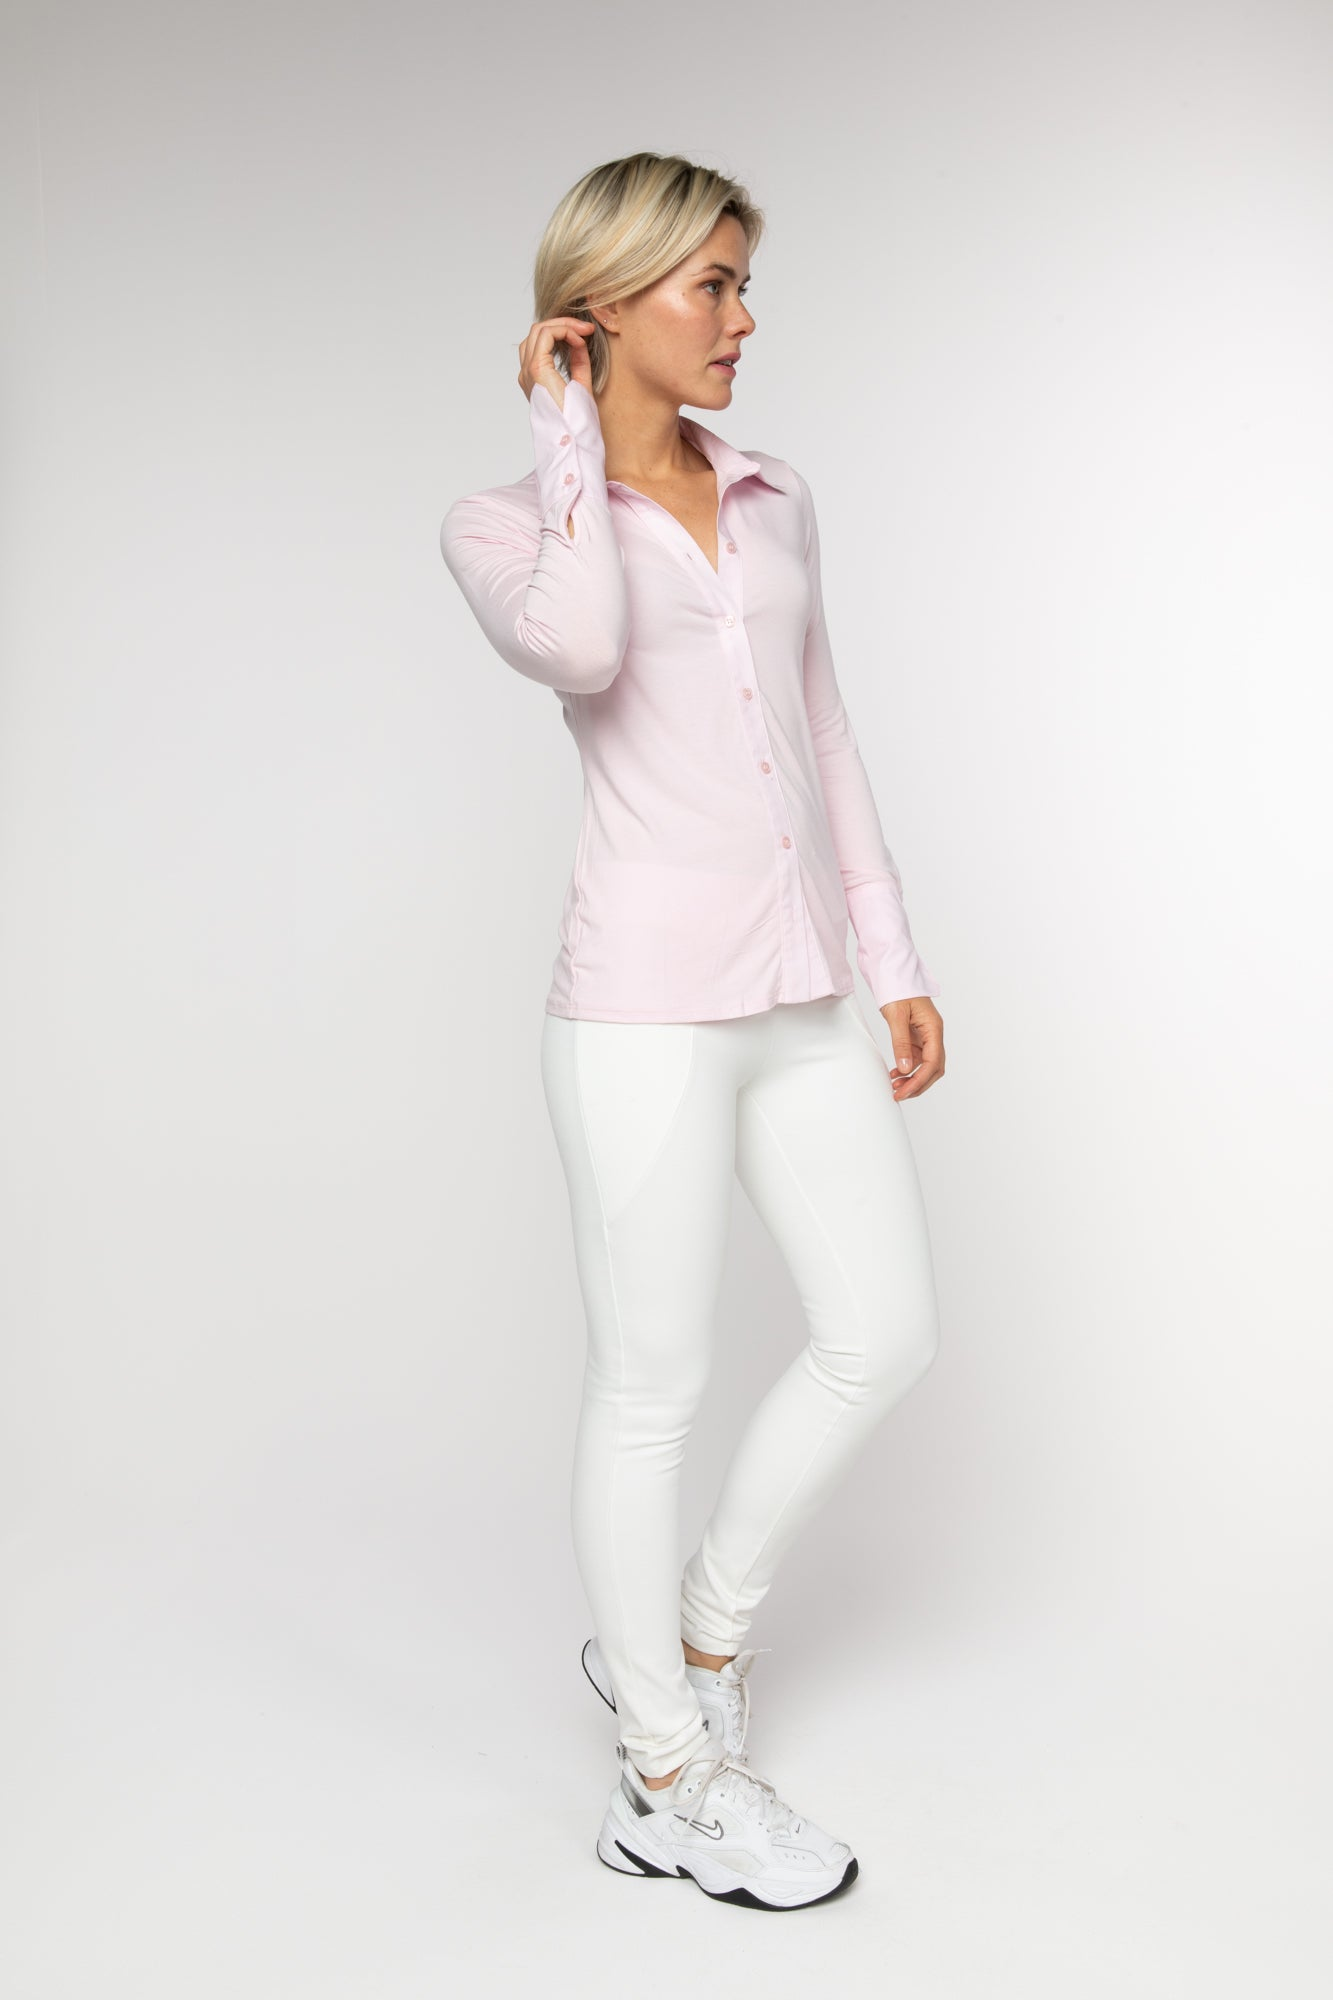 BRZ BUS 29 Blouse - Soft Pink - Braez